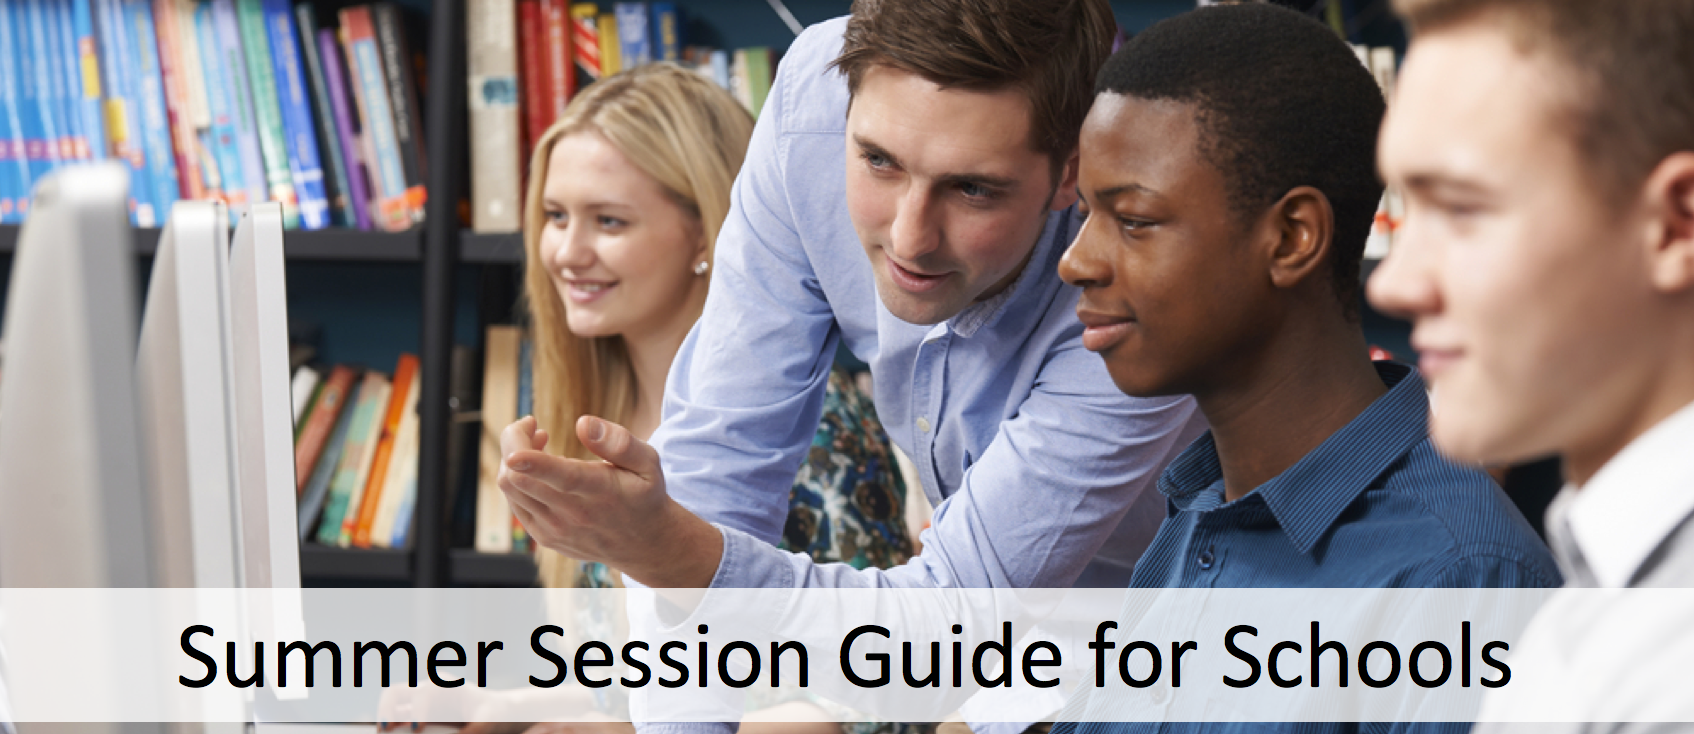 Summer Session Guide for Schools Banner